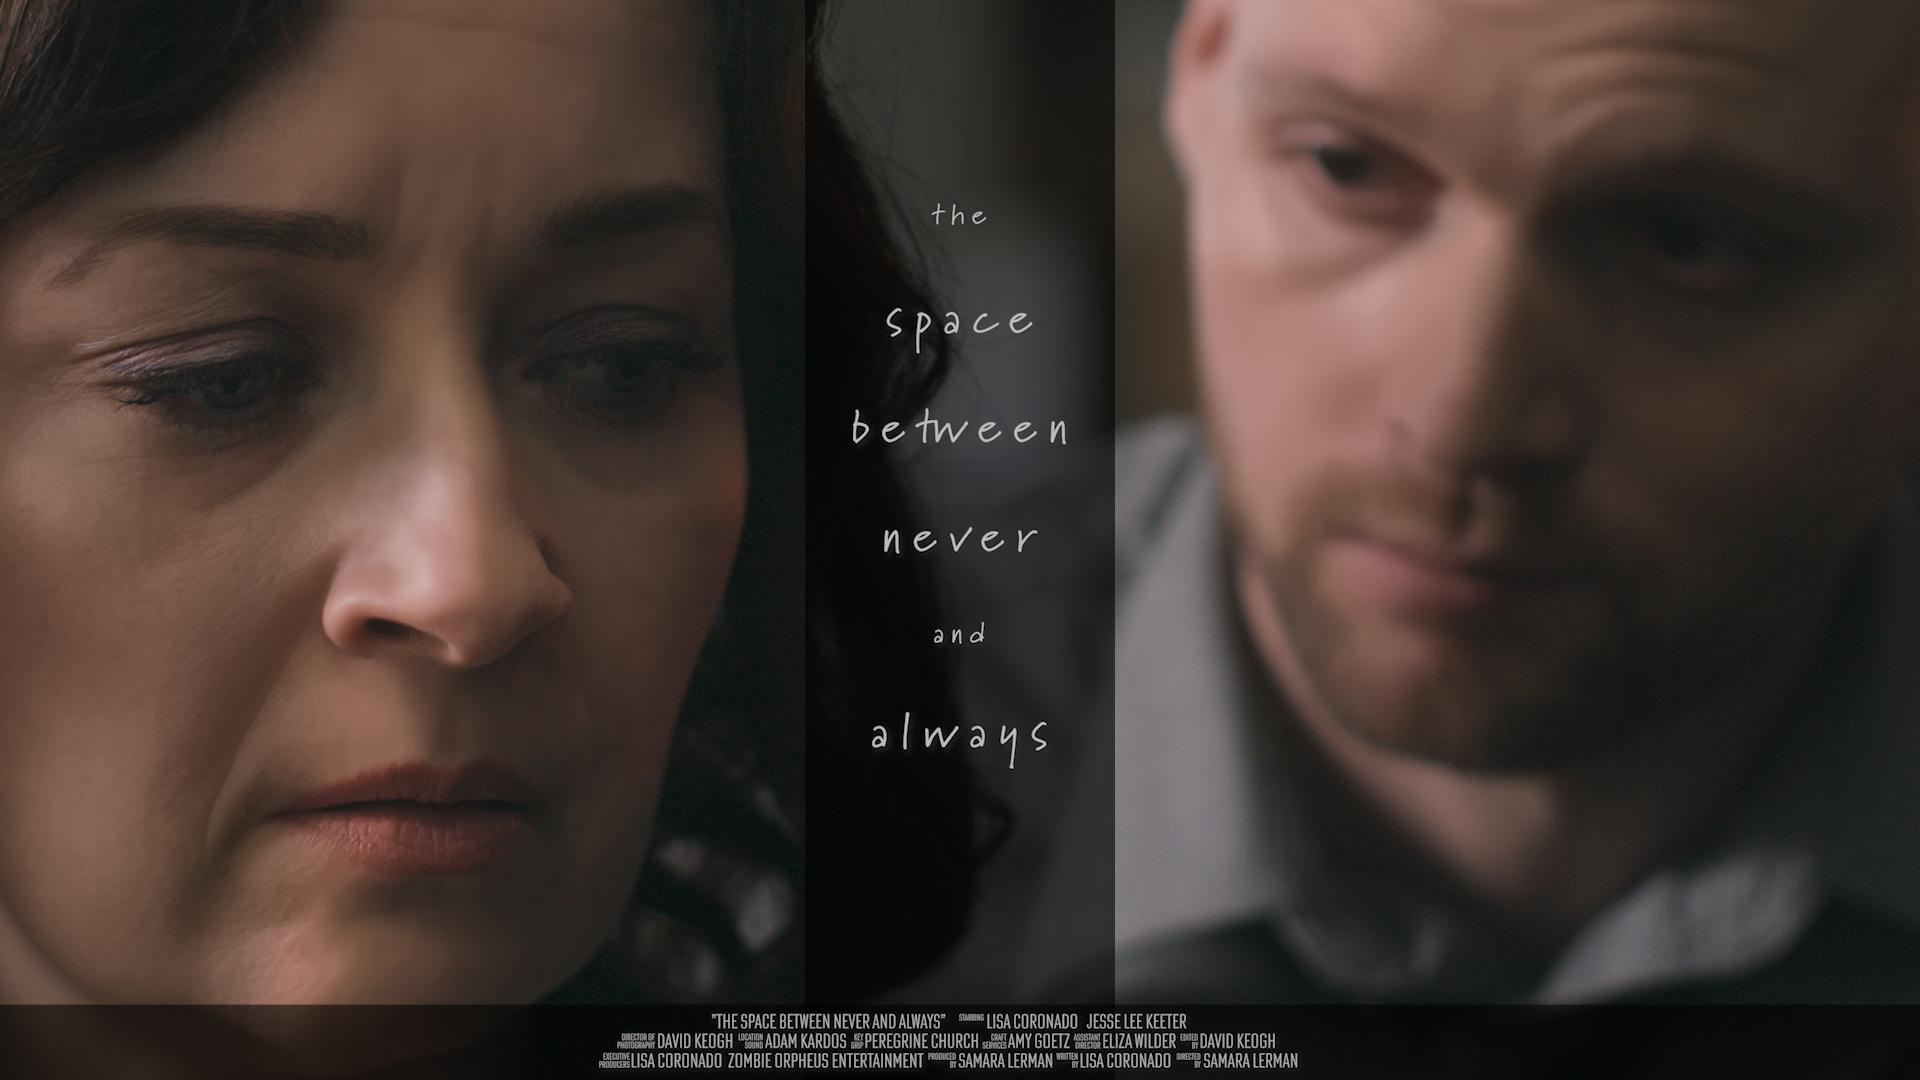 The Space Between Never And Always